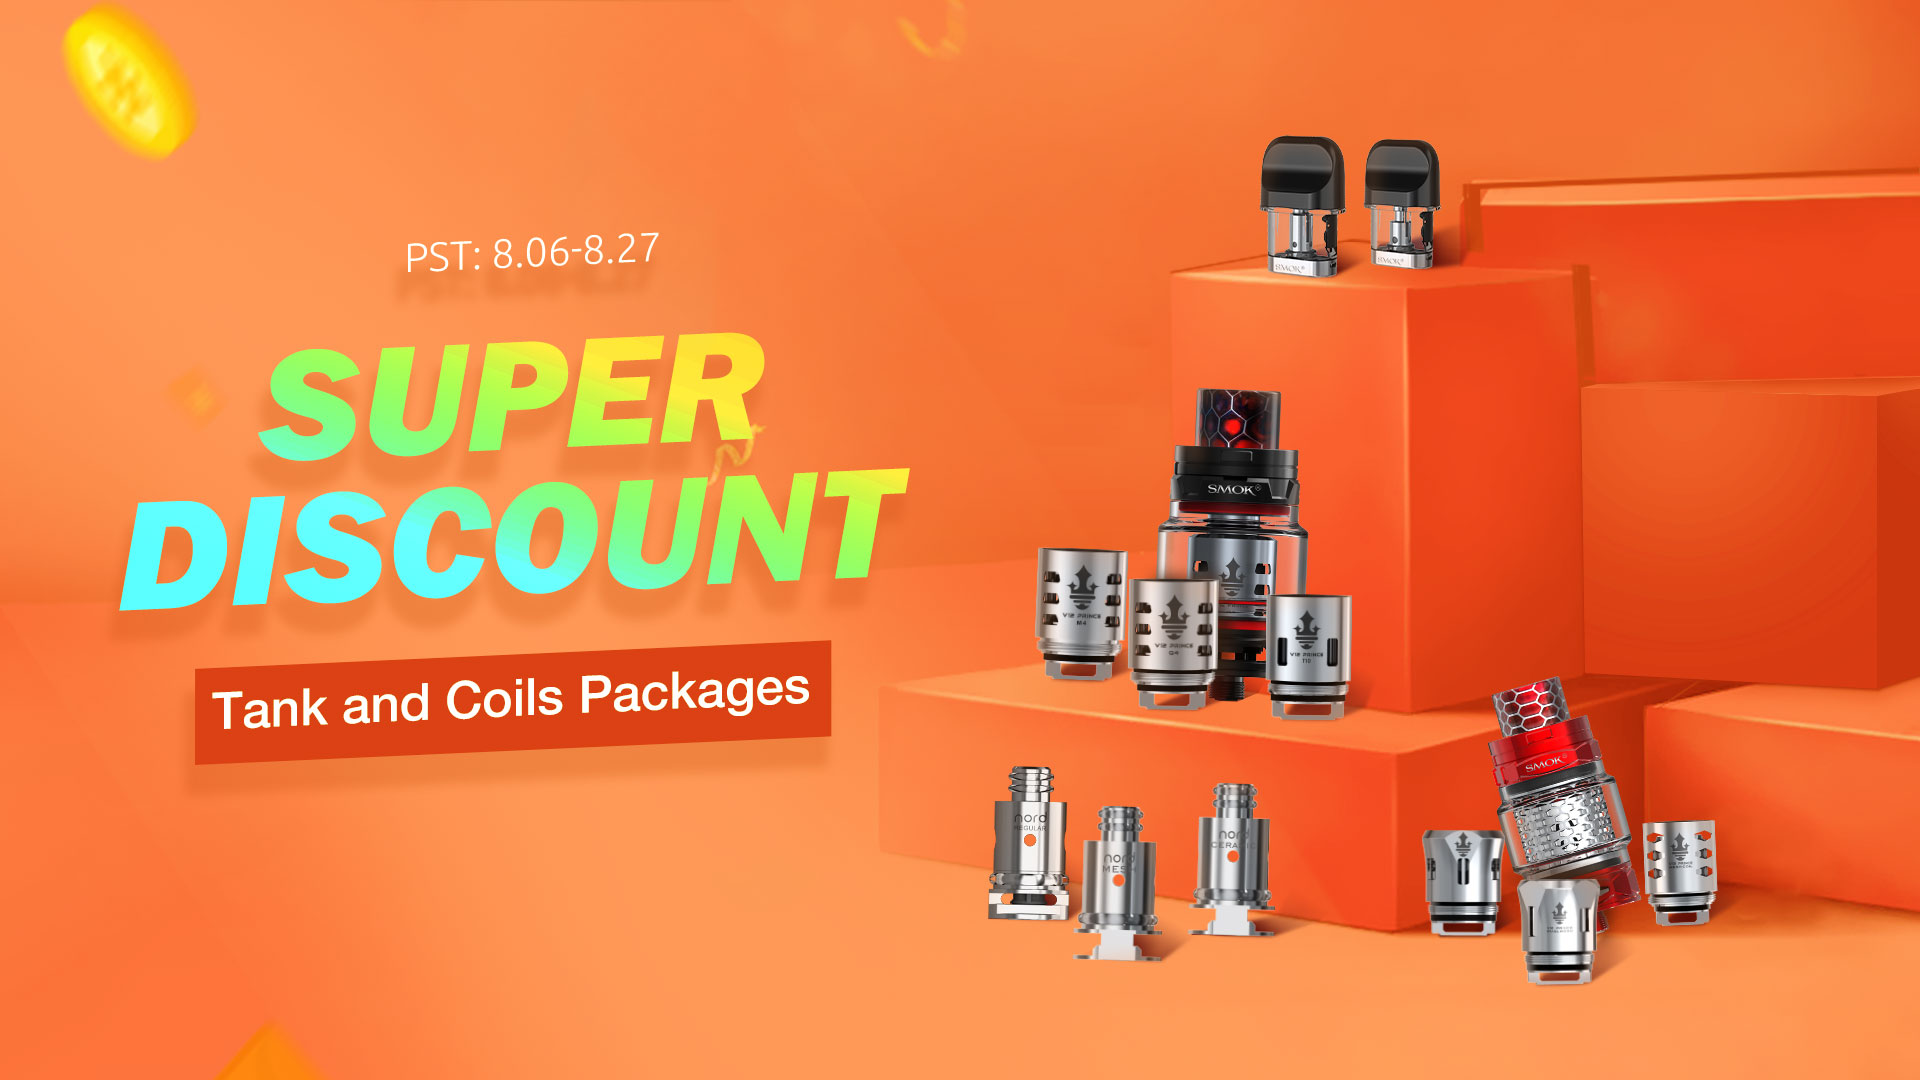 Tans and Coils Package